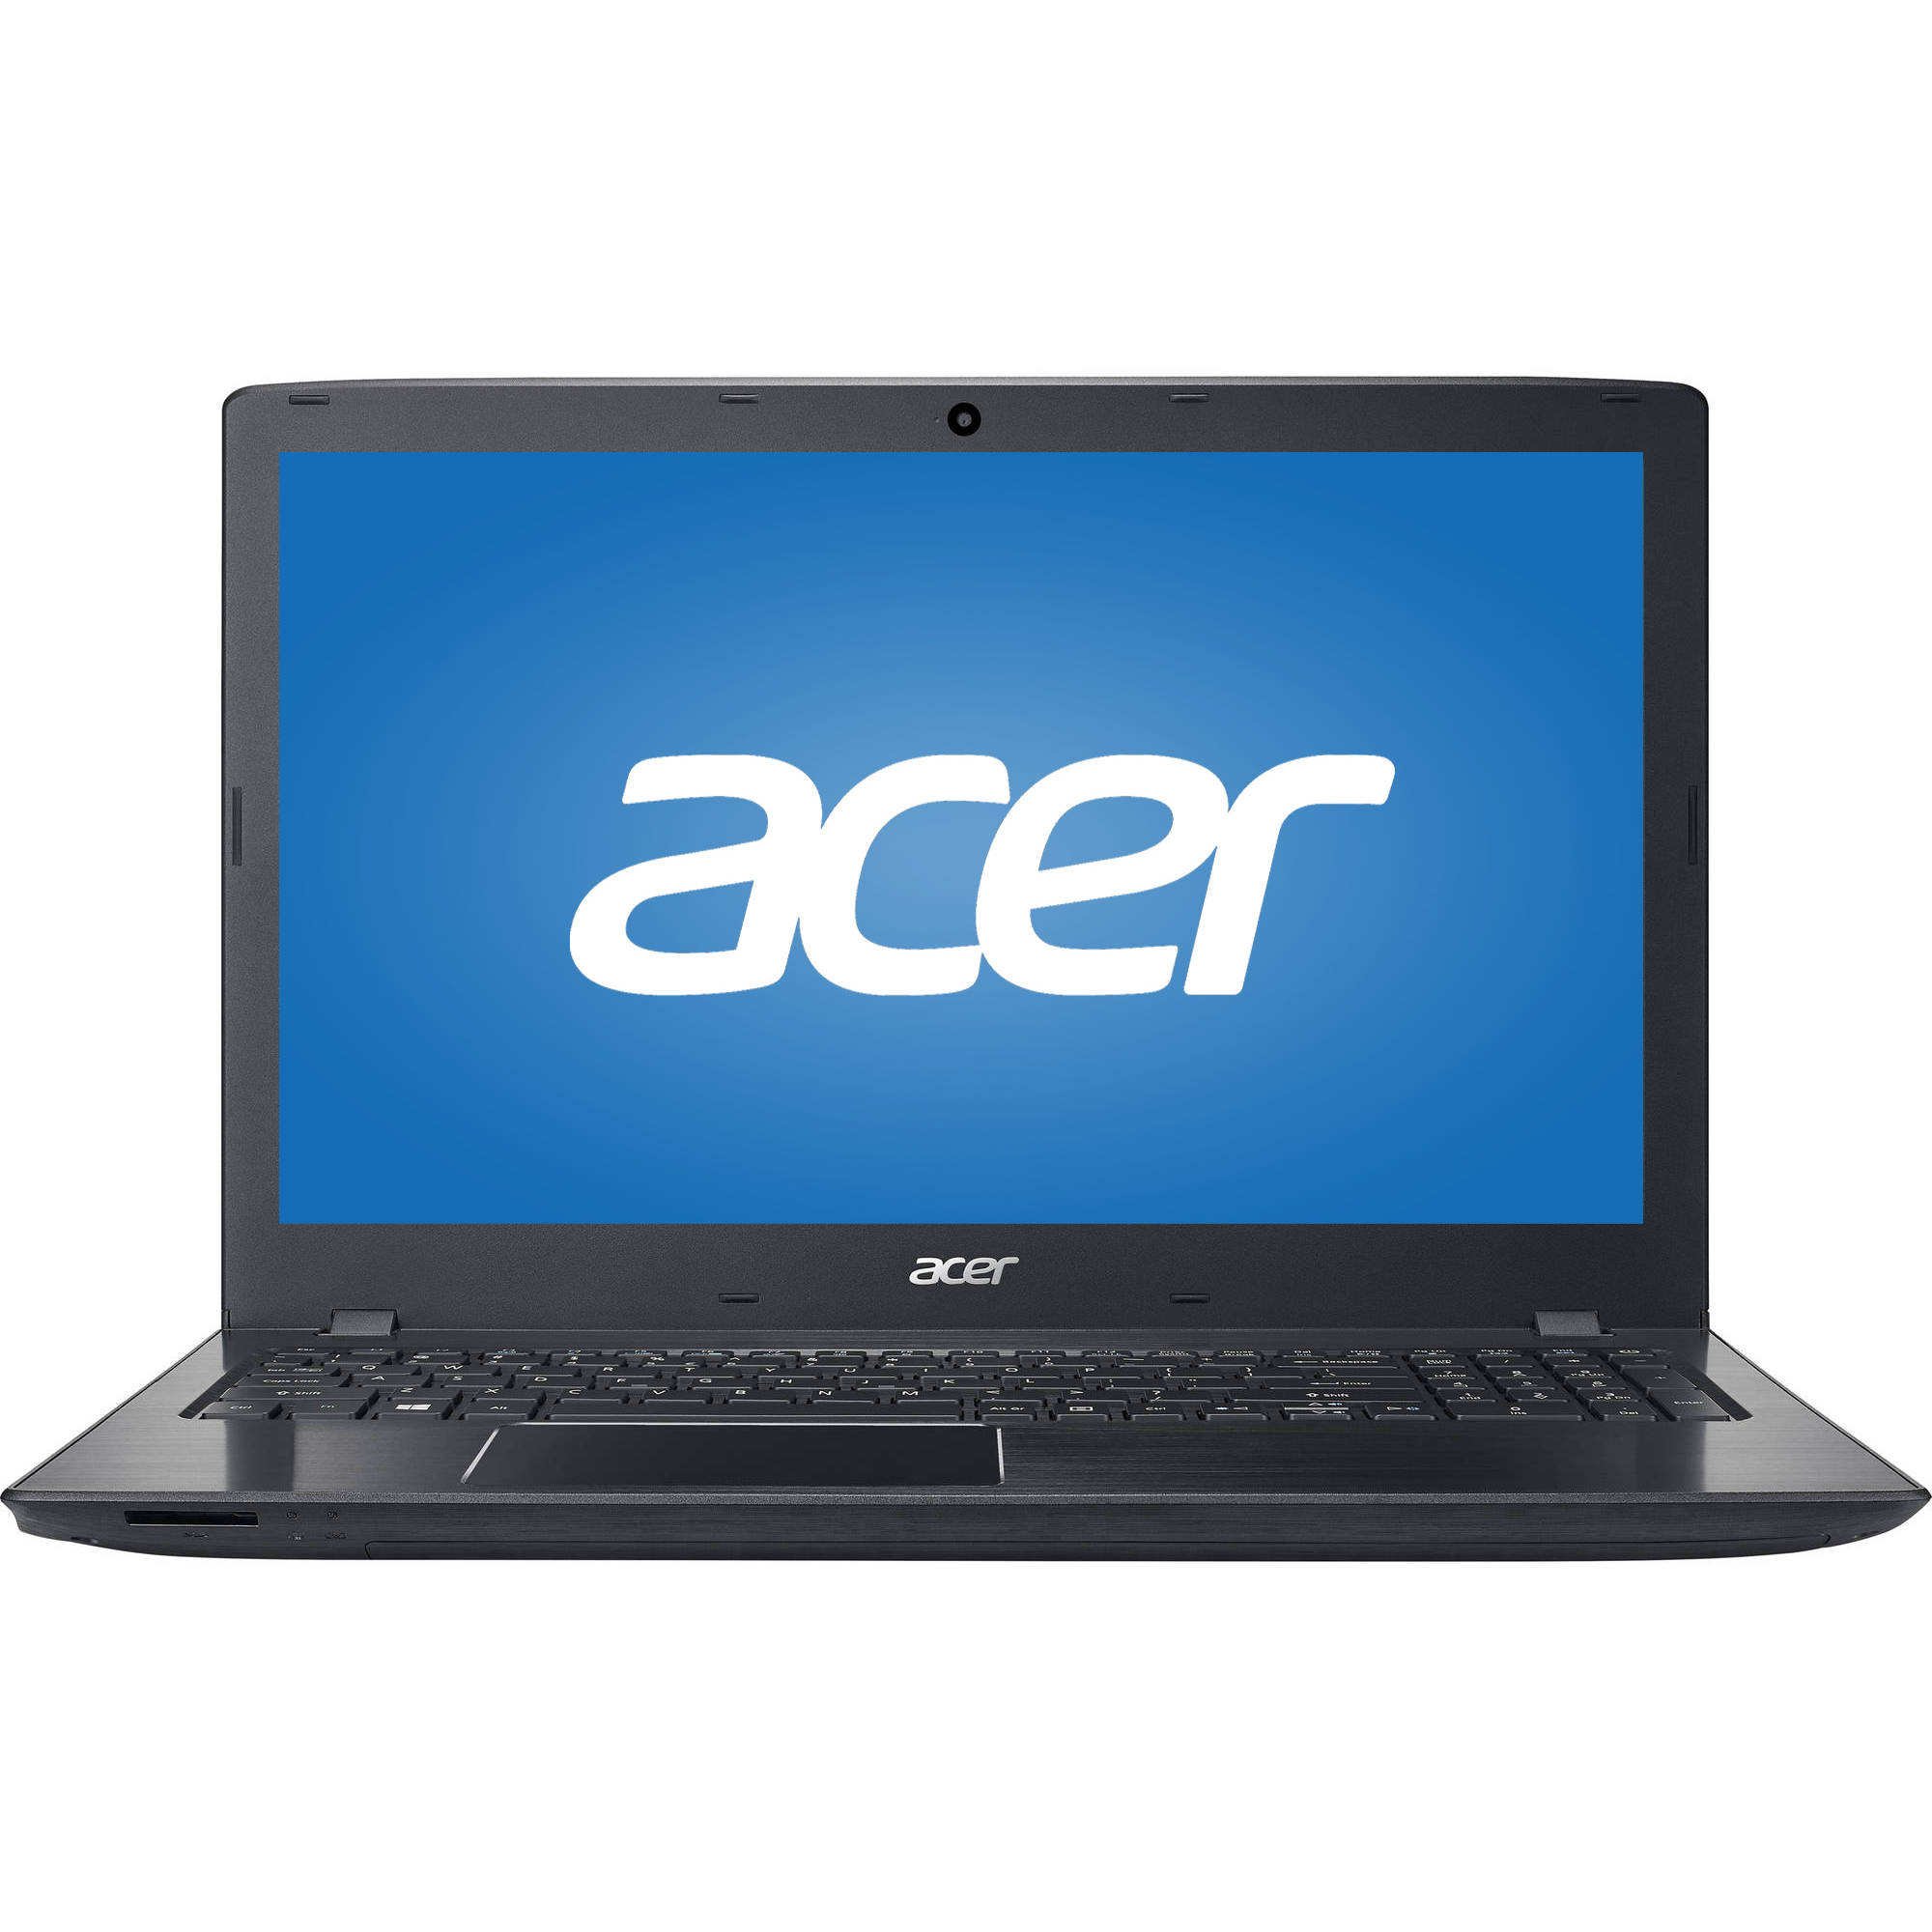 Refurbished Acer Aspire E5 - 575 - 54SM 15.6 Laptop, Windows 10 Home, Intel Core i5 - 6200U Processor, 4GB RAM, 1TB Hard Drive